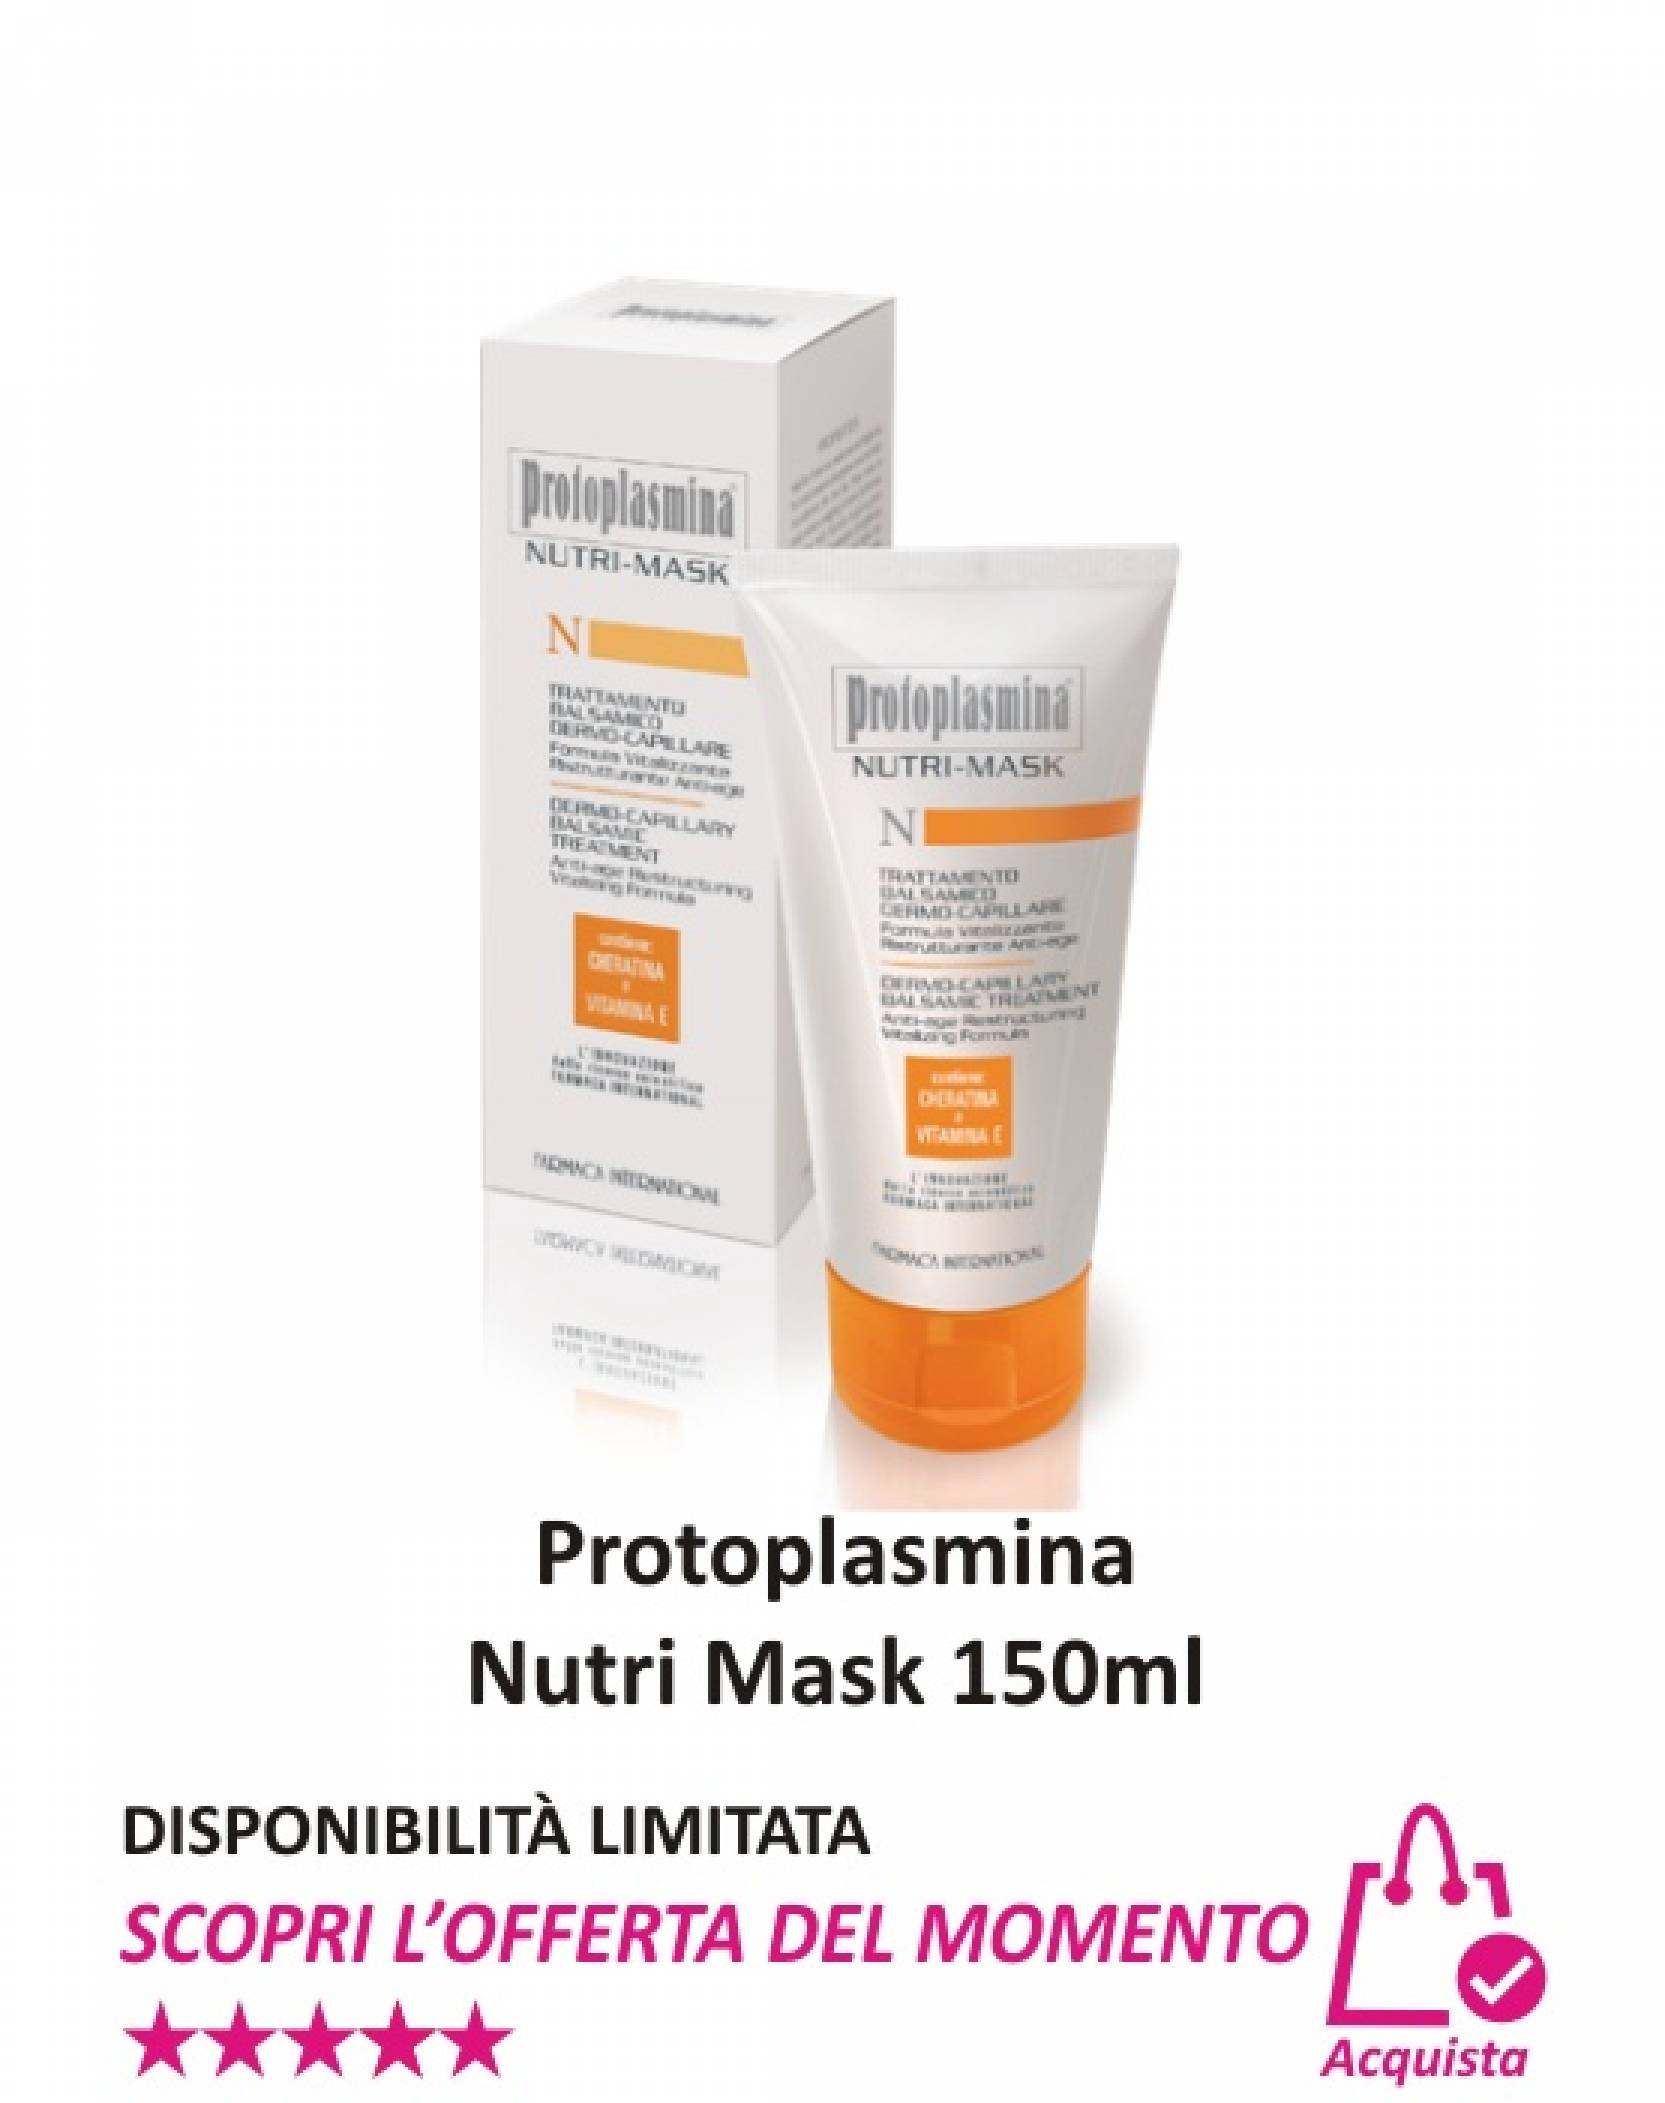 Protoplasmina Nutri Mask 150 ml